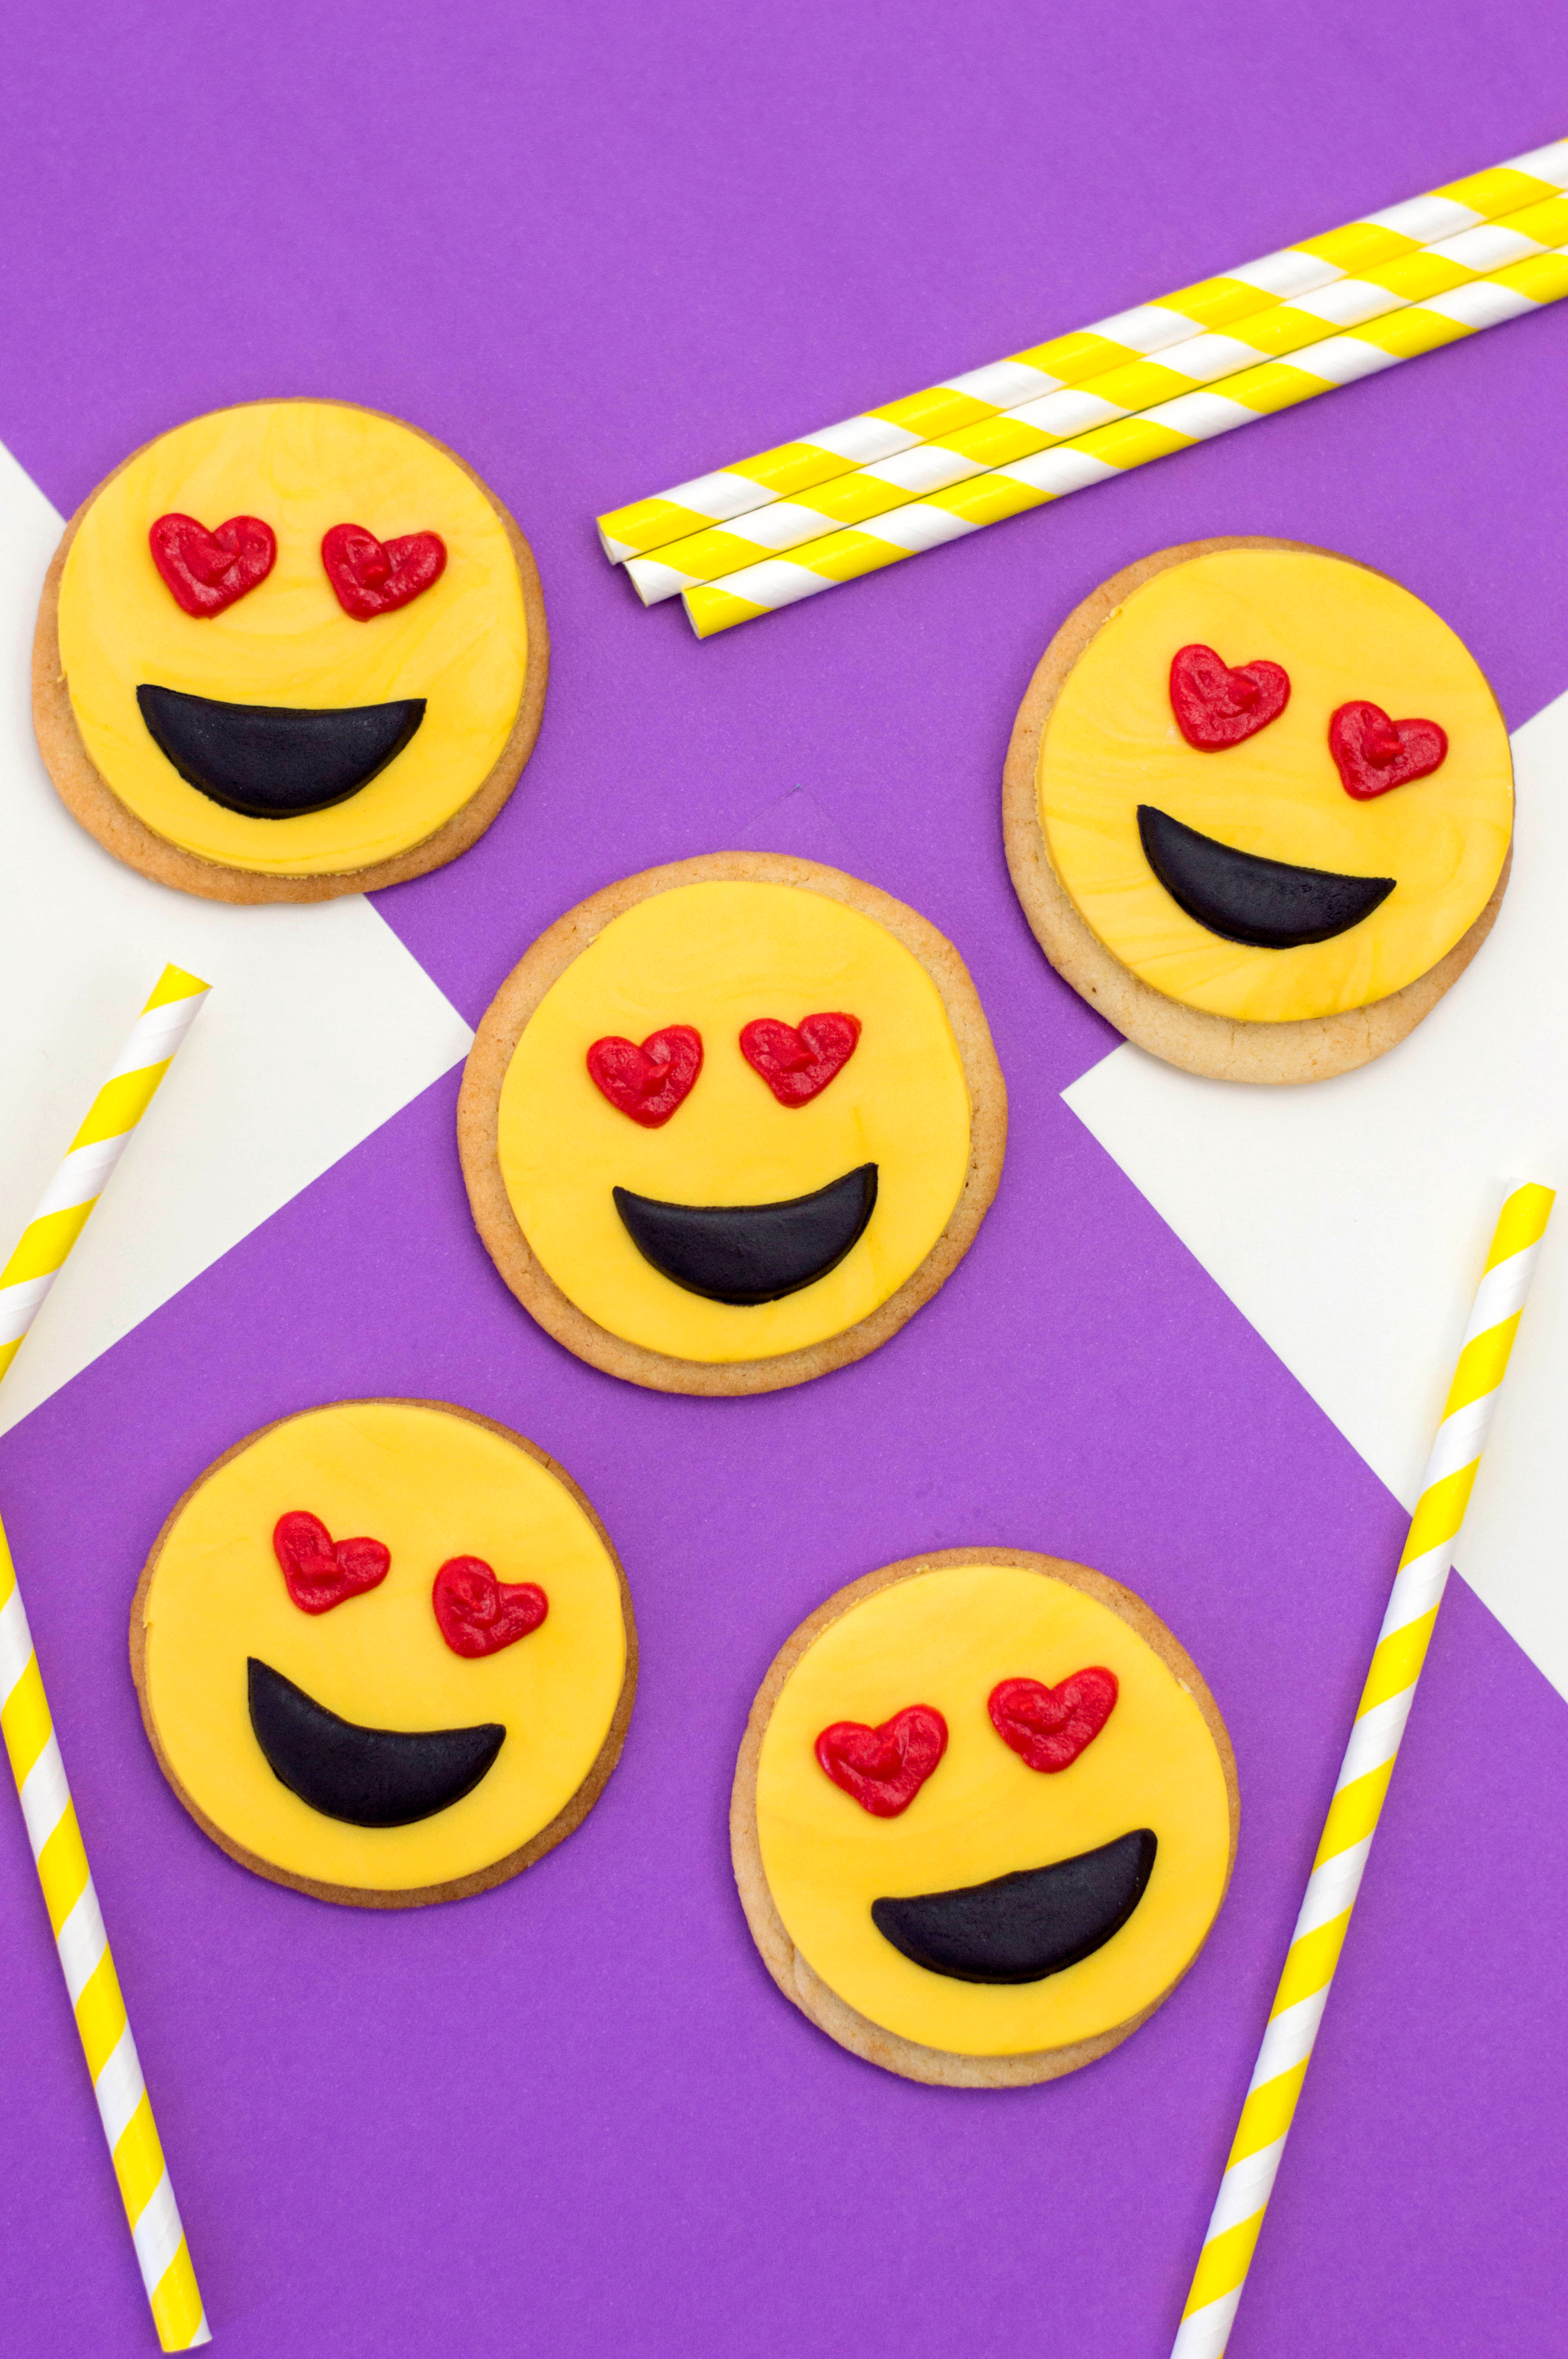 These Adorable Heart Eye Emoji Cookies Would Make Great Party Favors At Your Birthday Or A Super Sweet Classroom Treat For Valentines Day